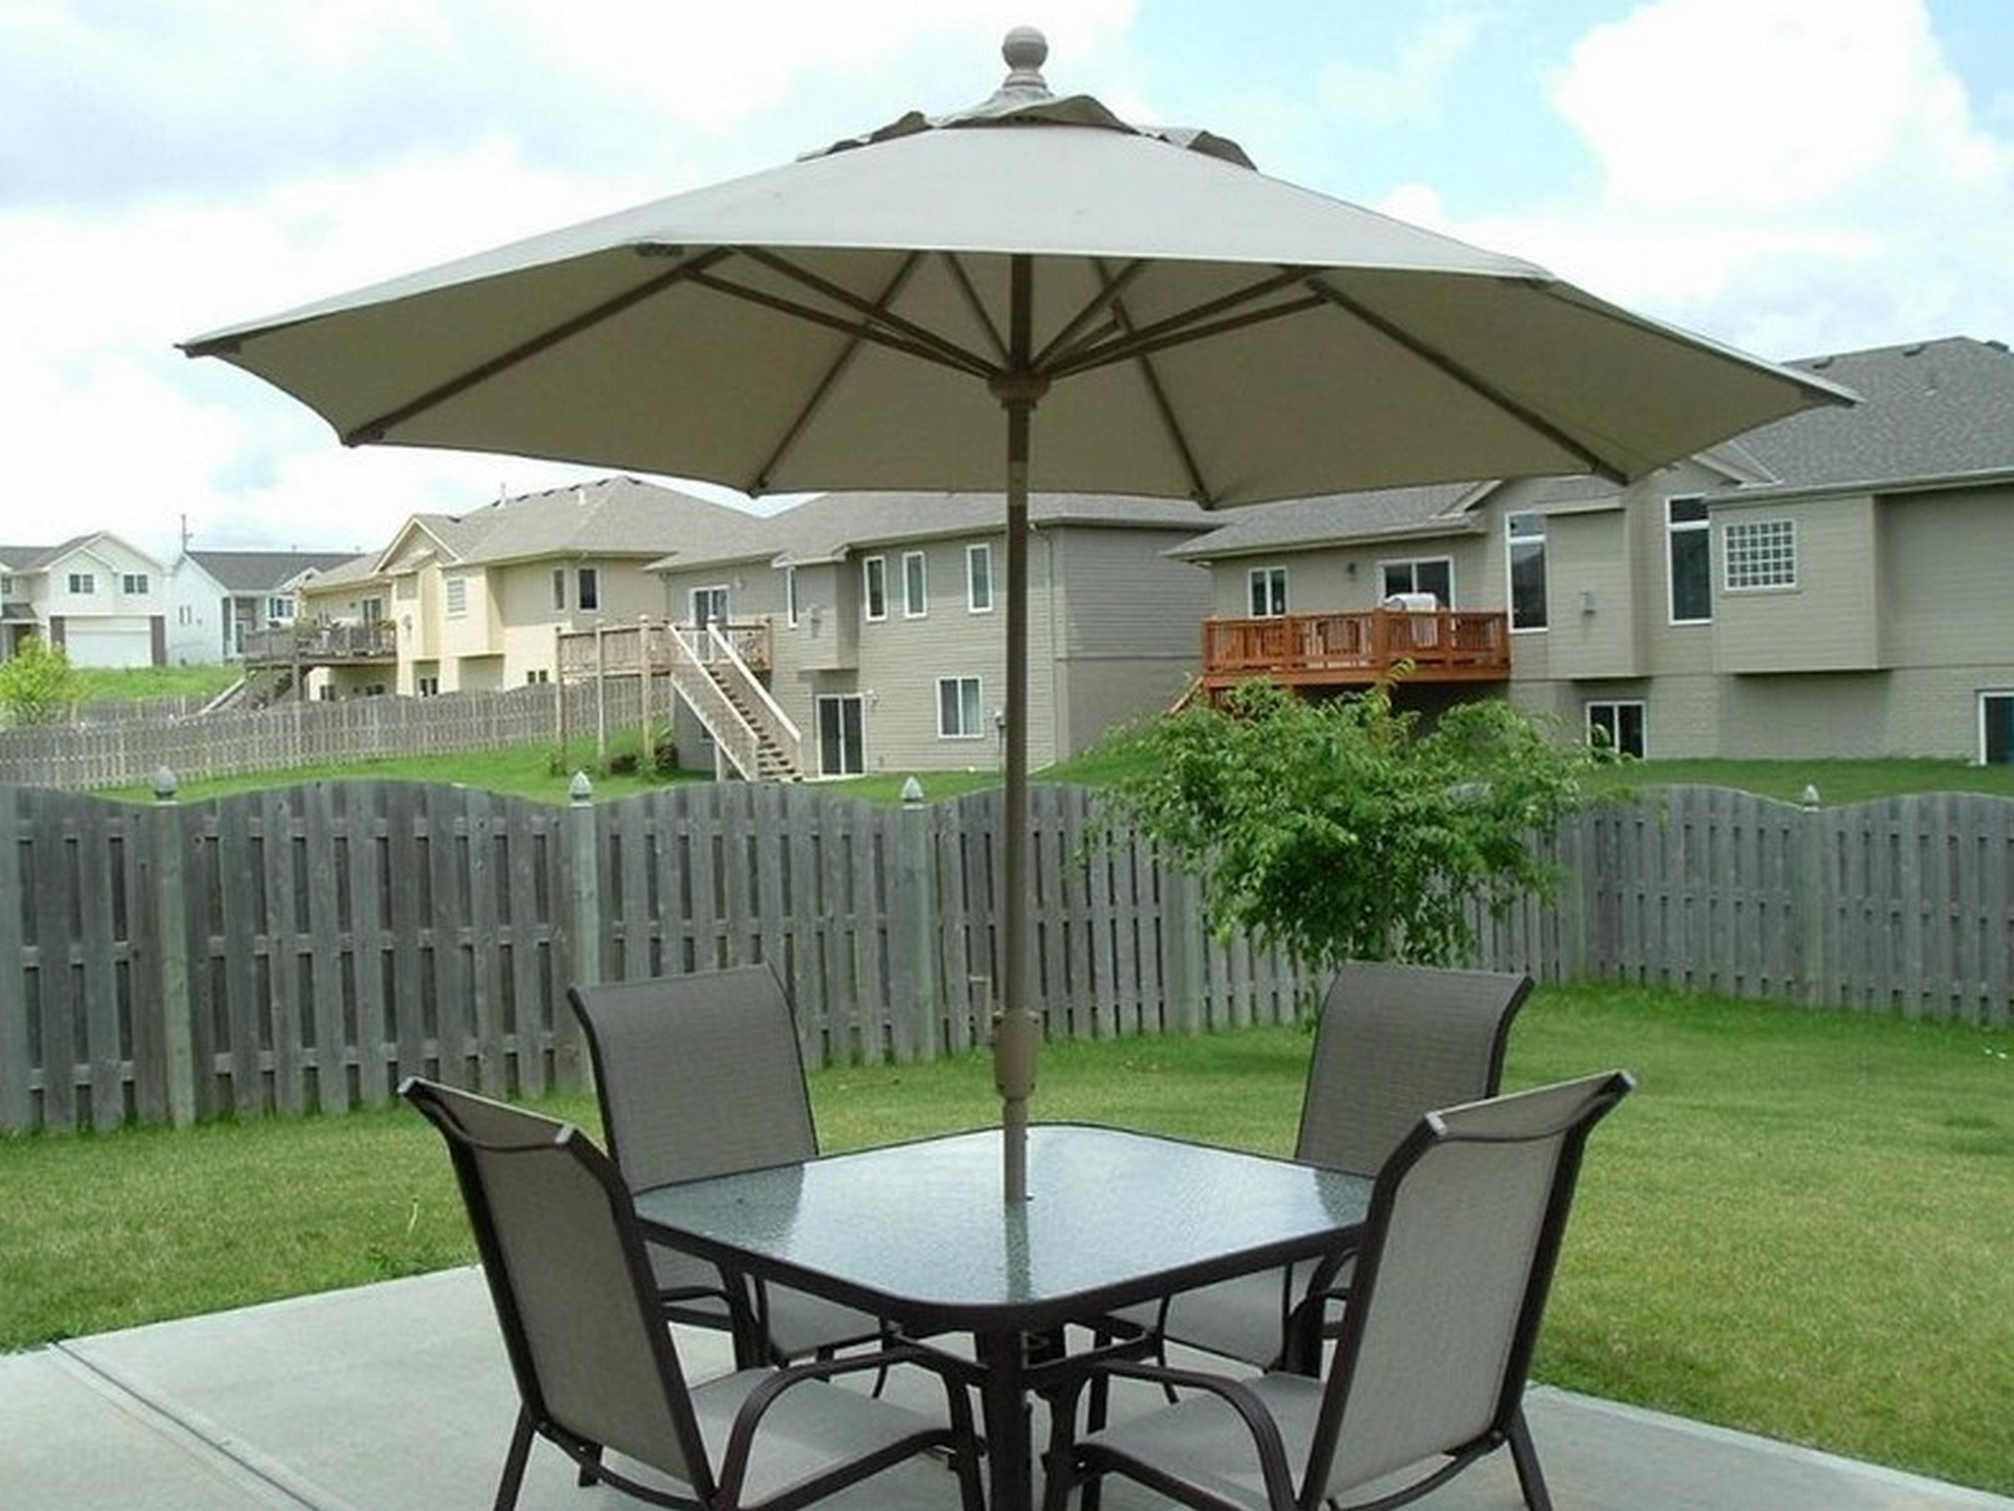 Decorating Small Outdoor Patio With Umbrella Design Ideas Using Inside Favorite Small Patio Tables With Umbrellas (View 5 of 20)